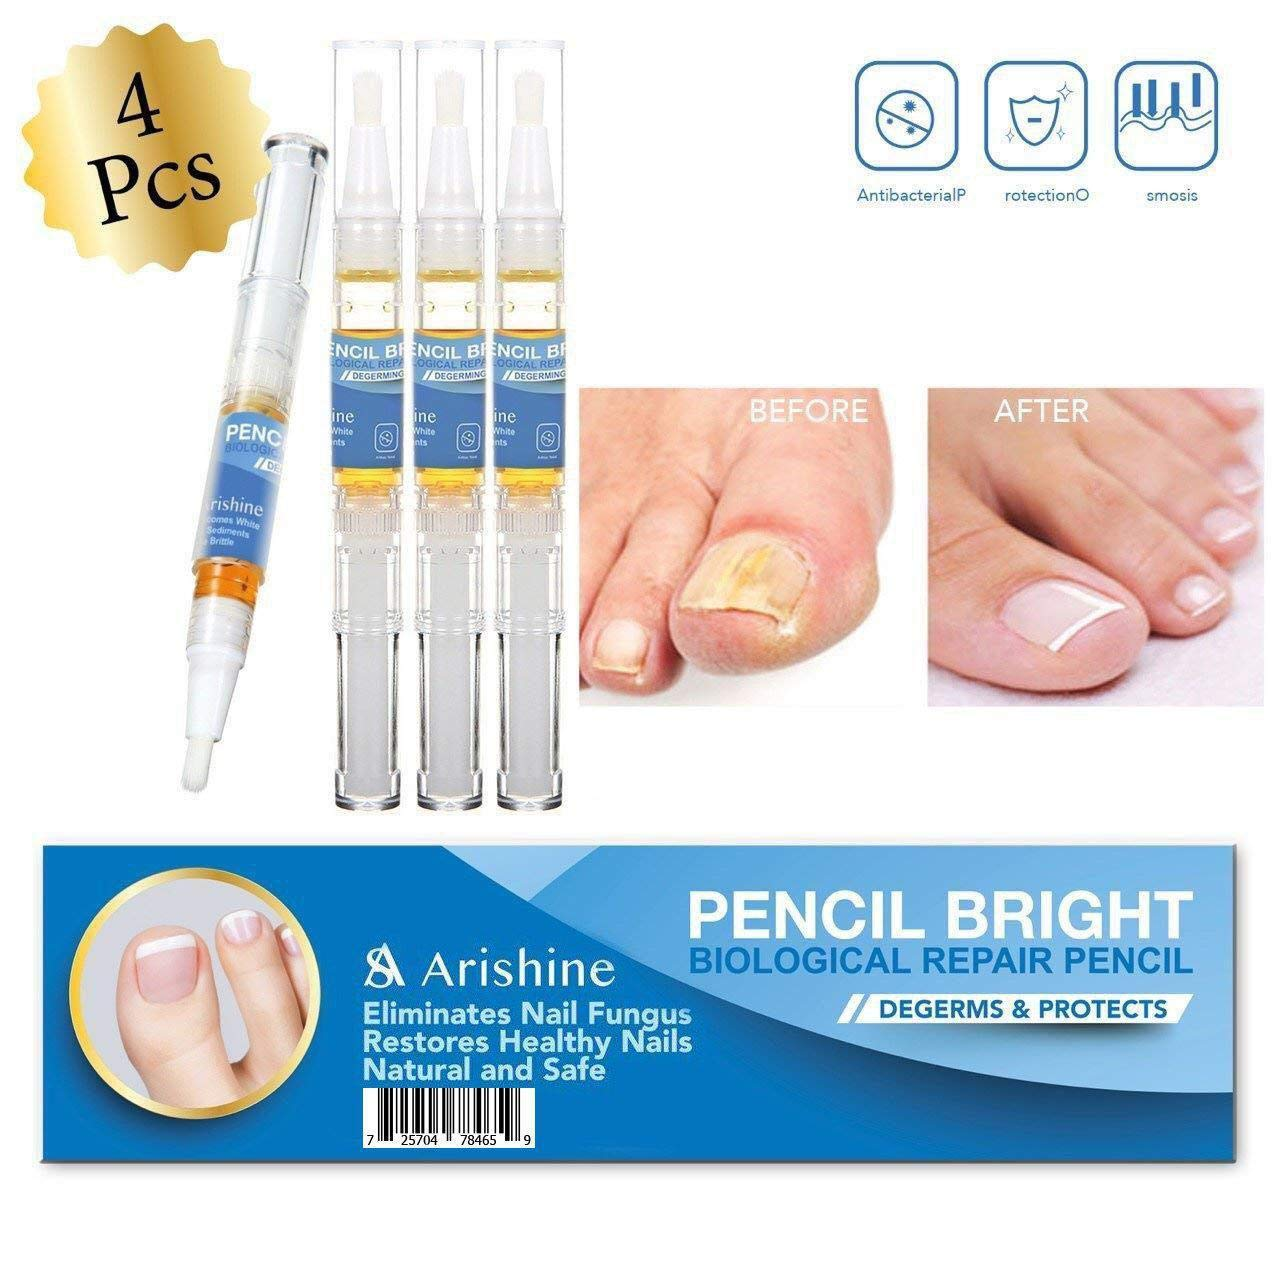 Amazon.com: Arishine Toenail Fungus Treatment, Fungus Stop, Maximum ...